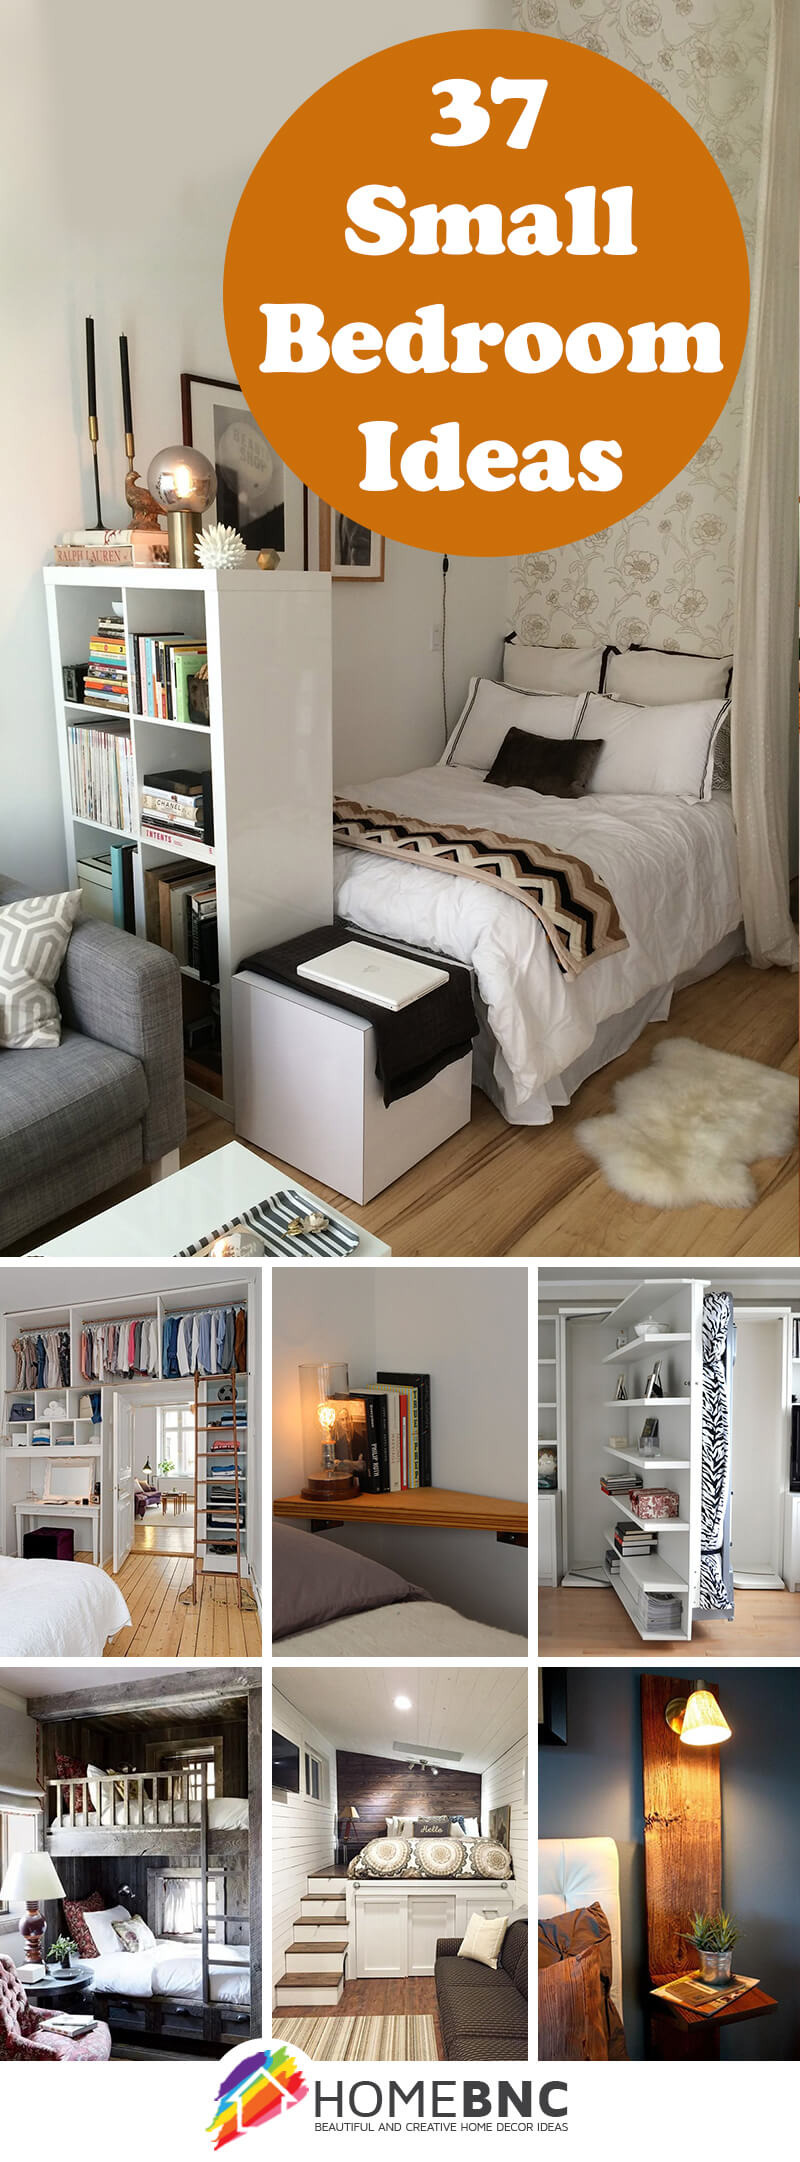 small bedroom designs and ideas pinterest share homebnc